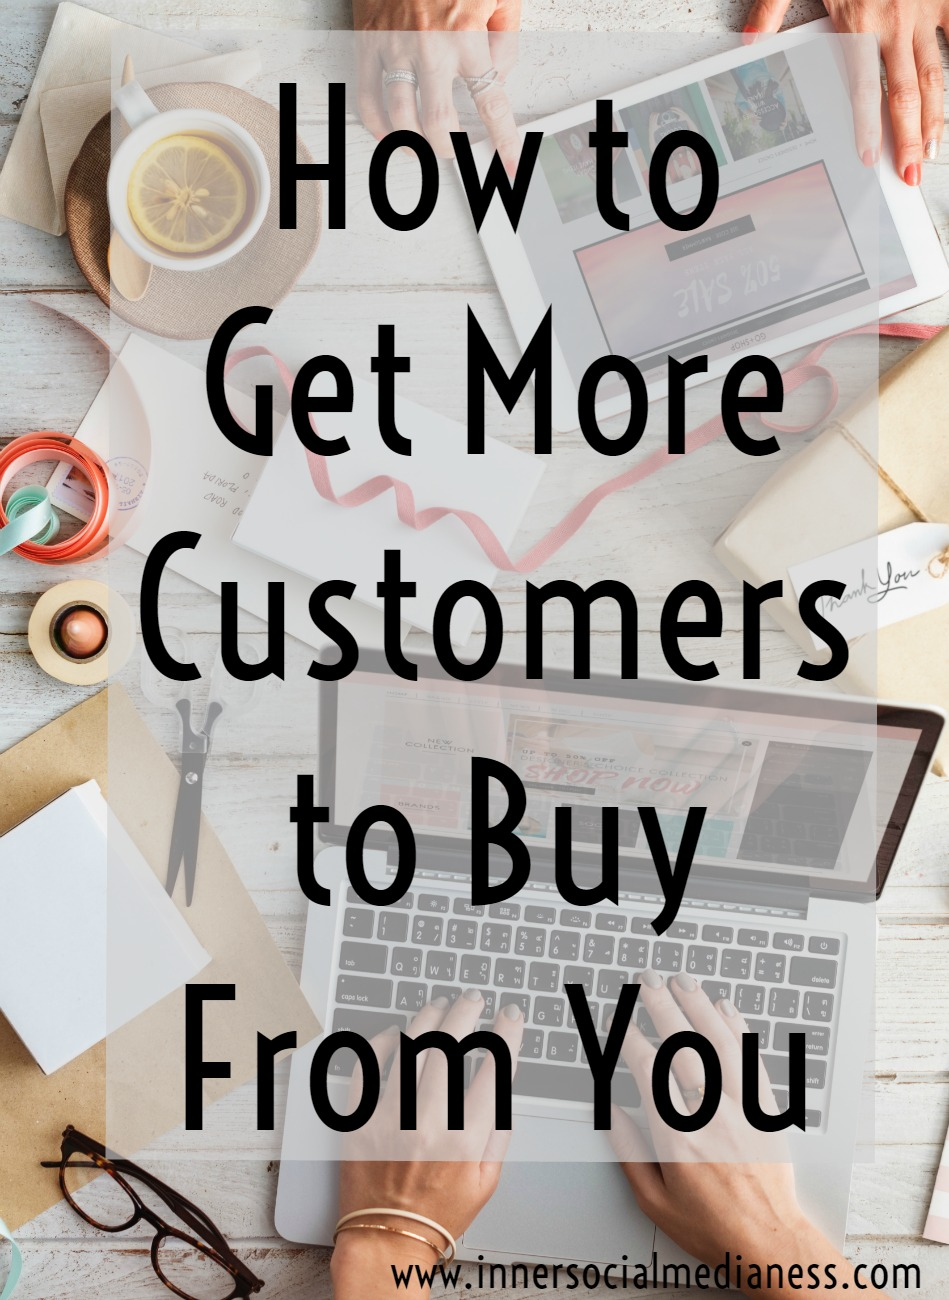 How to Get More Customers to Buy From You - Most of us know that we need to be active on social media to grow our marketing efforts. But it's more than just a Facebook post - It's now about being live in that moment with your audience, answering their questions, having conversations and giving them a chance to get to know you more. Take a look at these tips to learn how to be more visible and truly connecting to your customers.